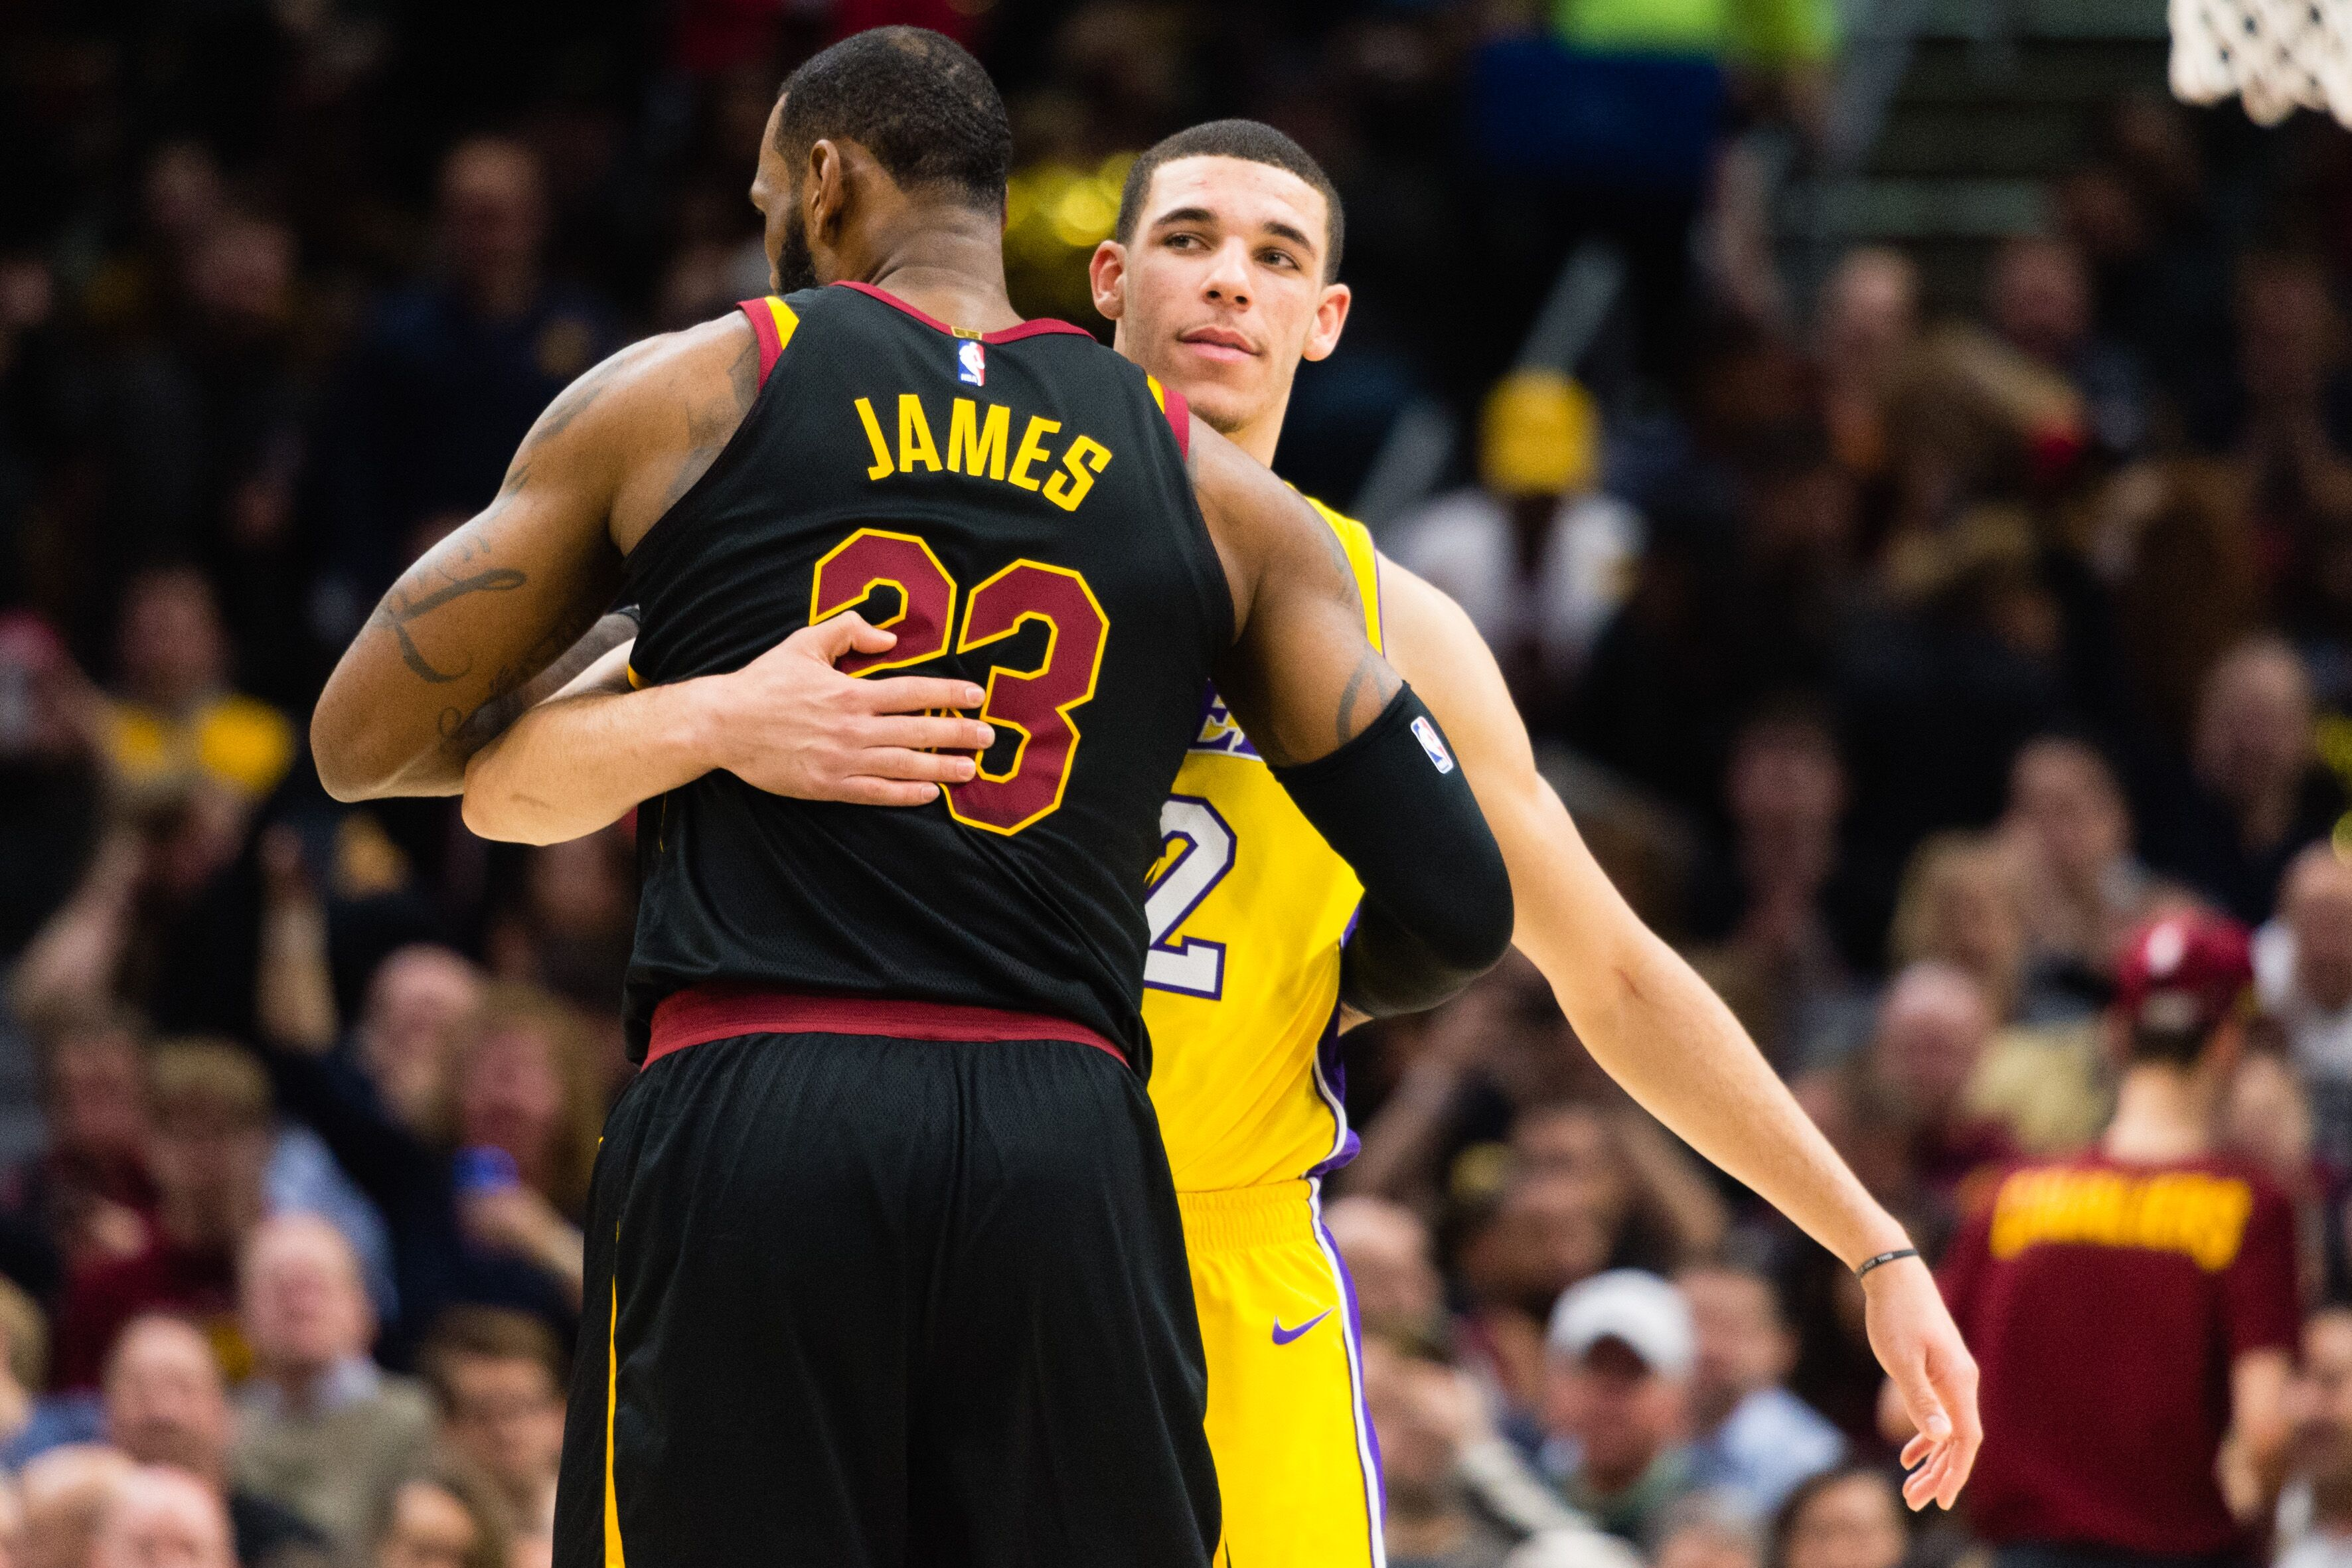 893176892-los-angeles-lakers-v-cleveland-cavaliers.jpg